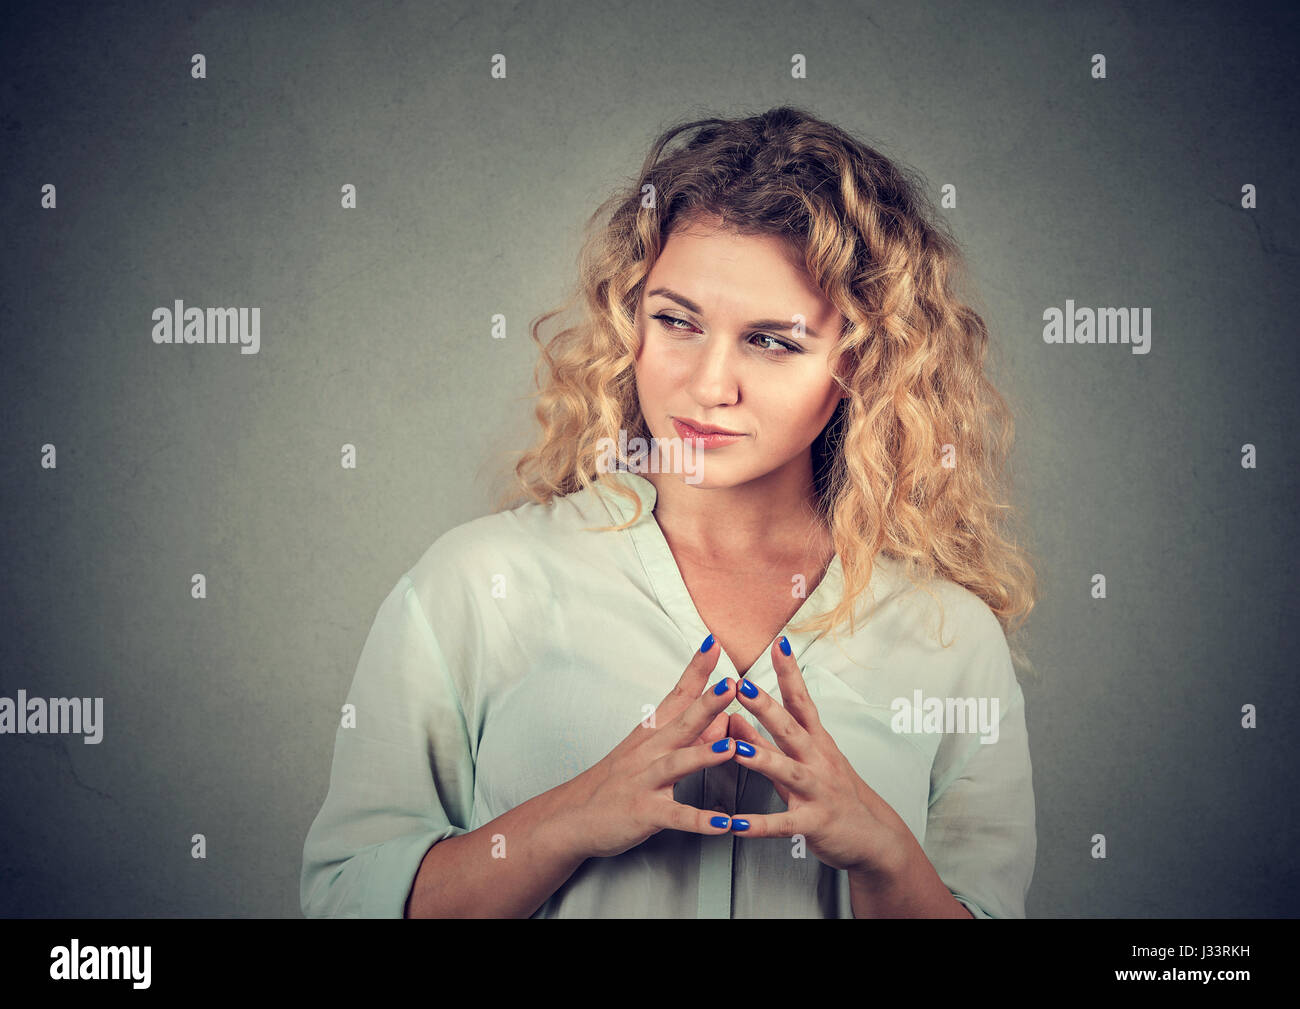 Closeup portrait of sneaky, sly, scheming young woman plotting something isolated on gray background. Negative human - Stock Image